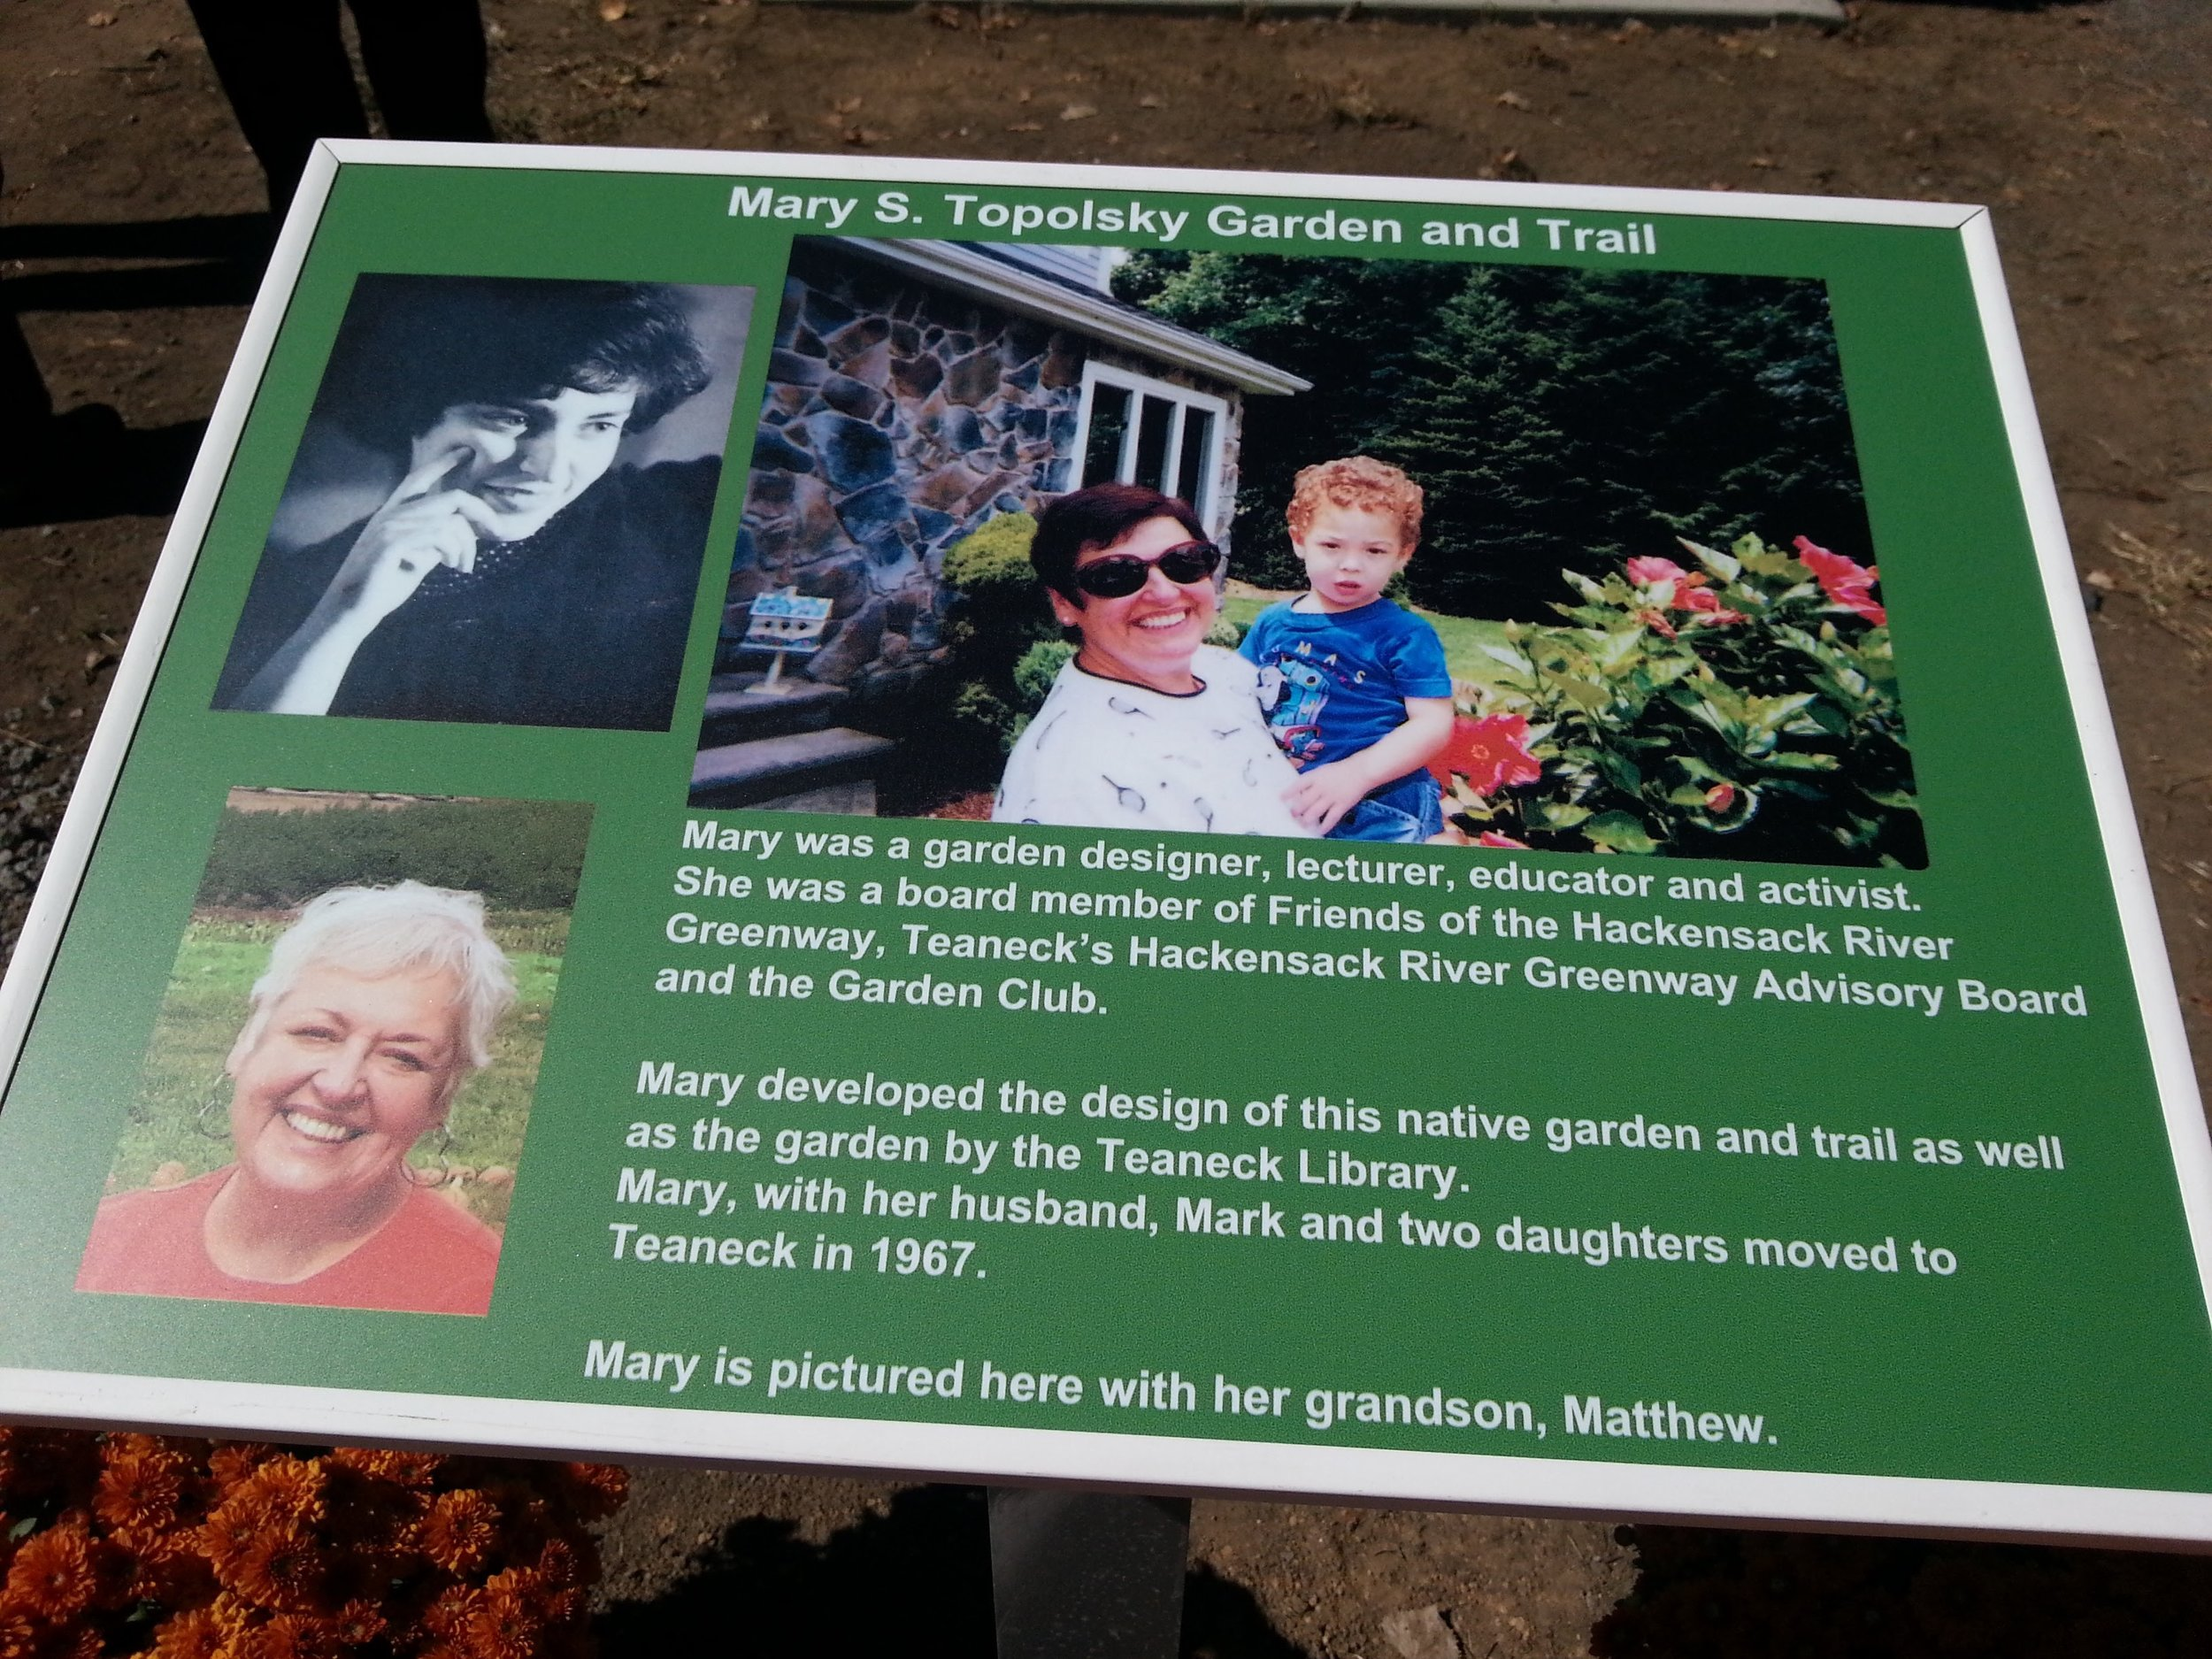 Biographical sign for Mary S. Topolsky